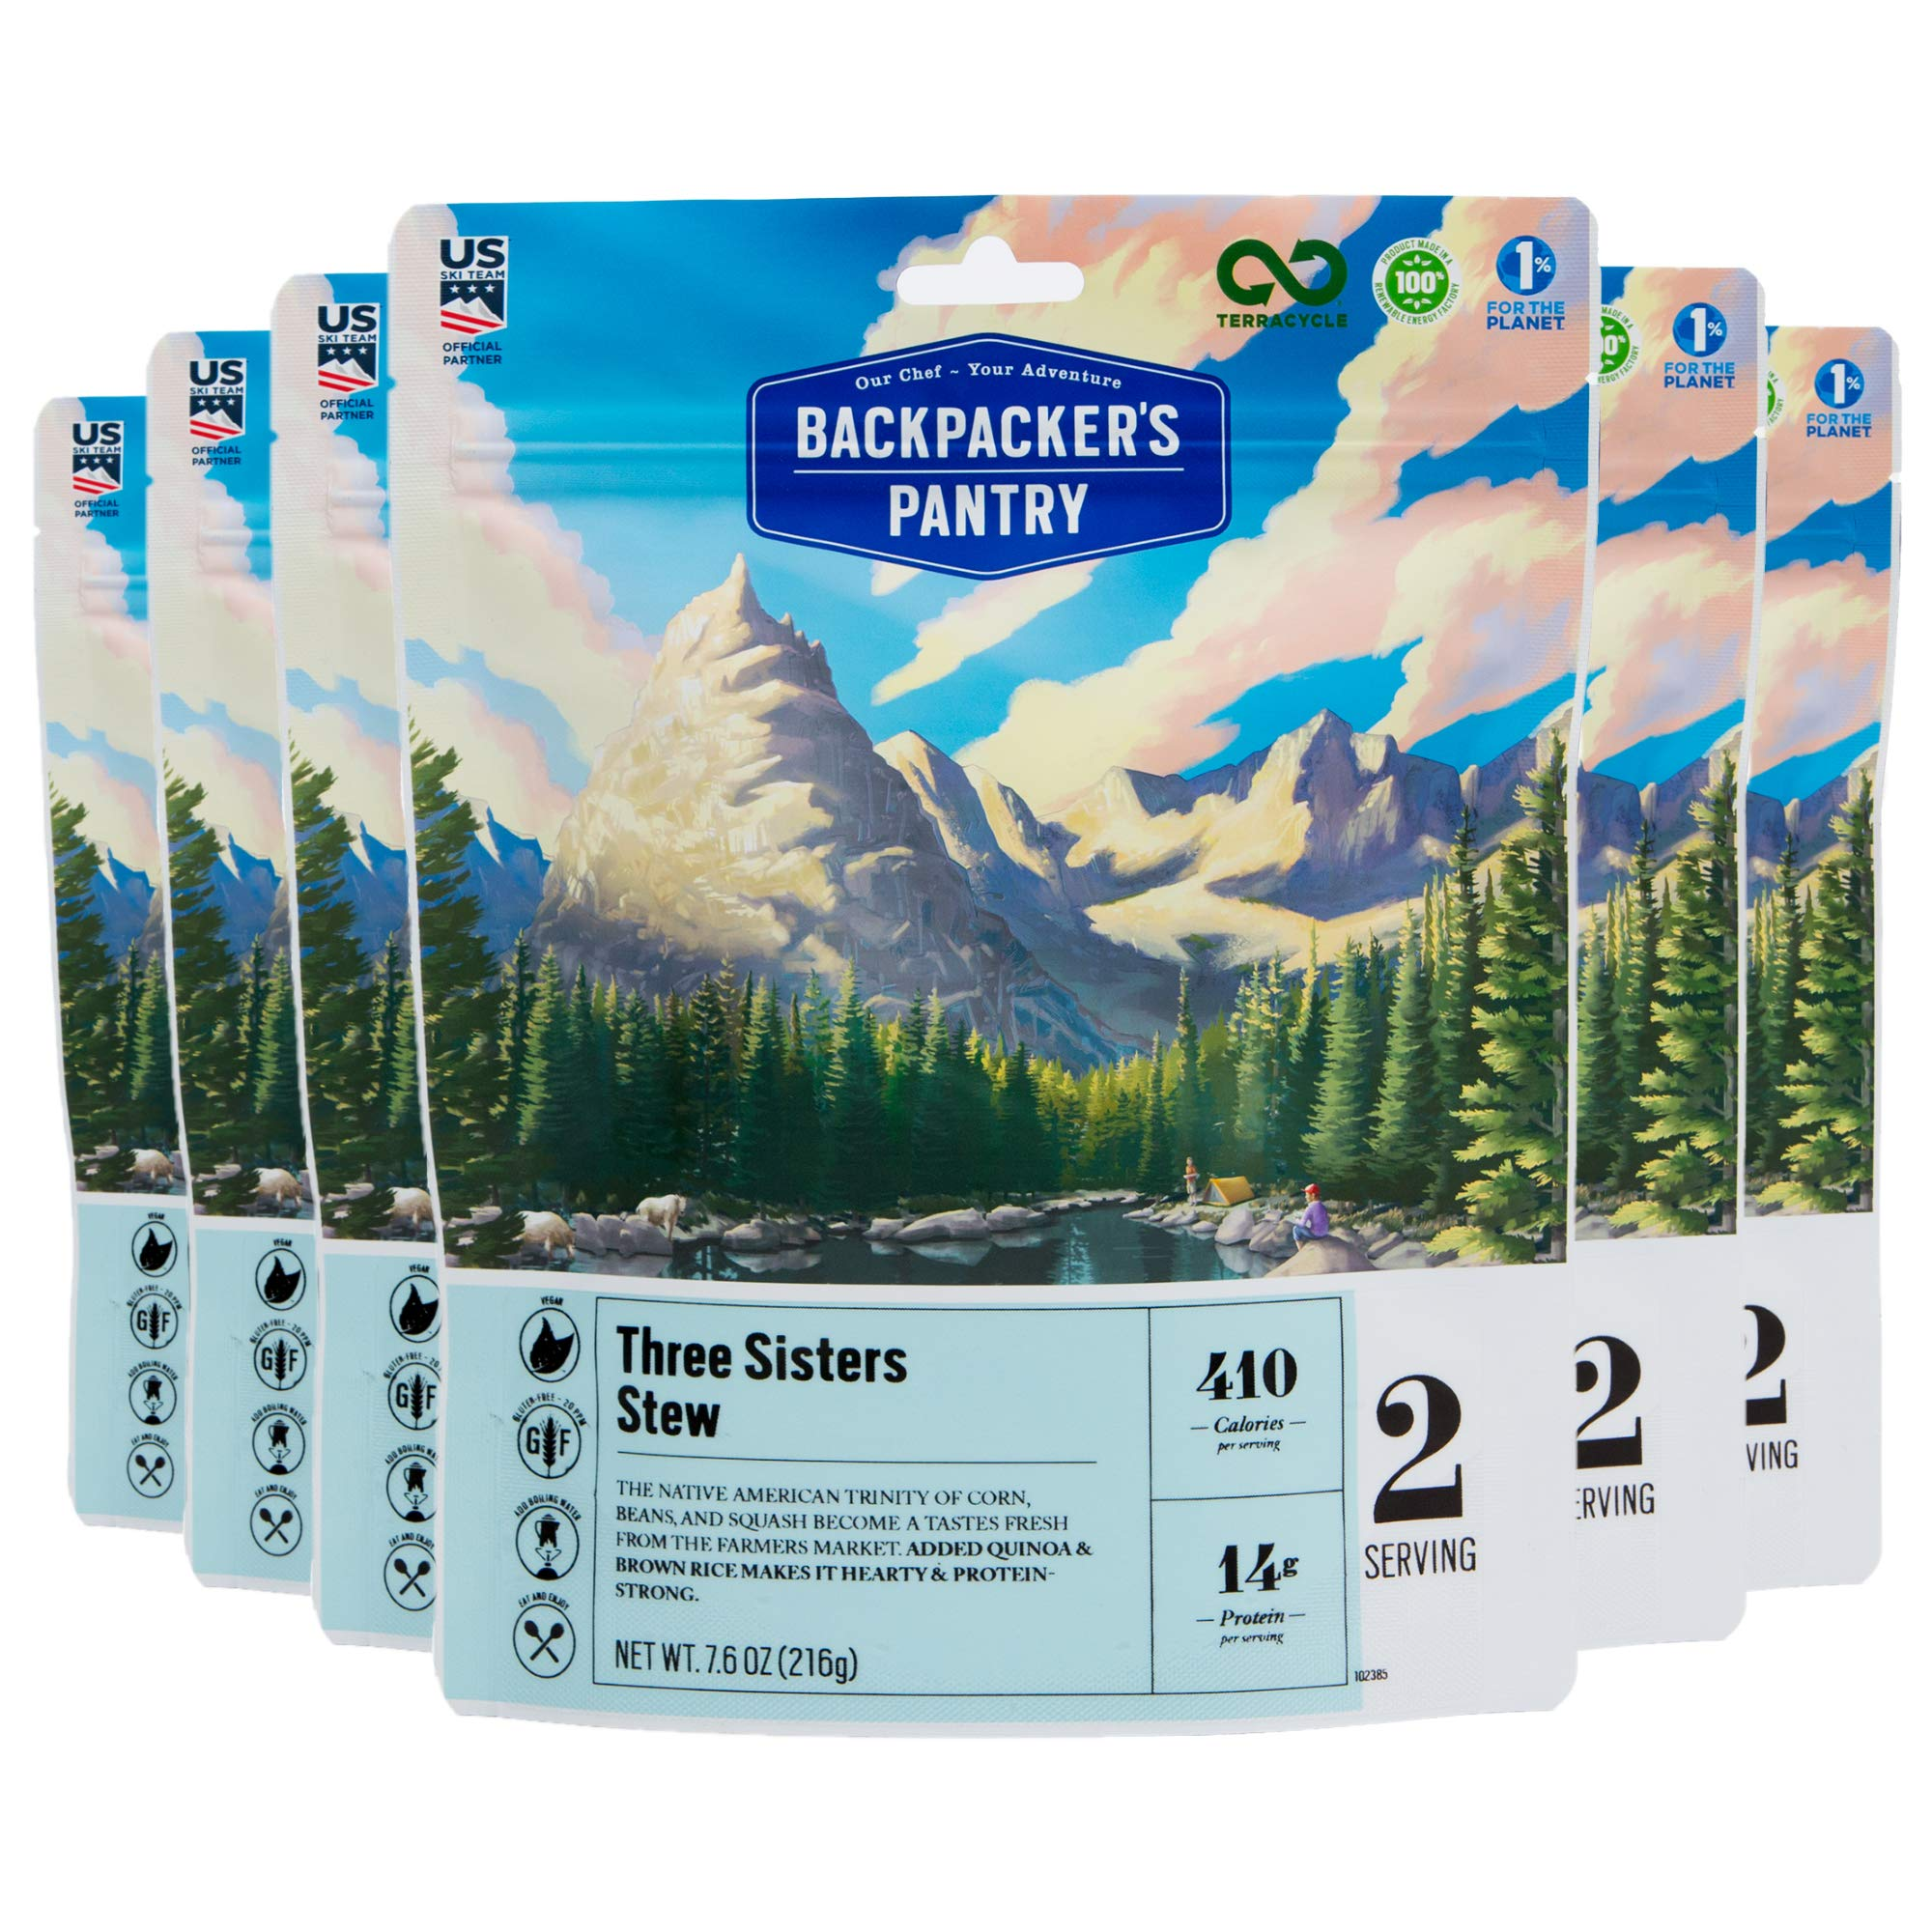 Backpacker's Pantry Three Sisters Stew, 2 Servings Per Pouch (6 Count), Freeze Dried Food, 14 Grams of Protein, Gluten Free, Vegan by Backpacker's Pantry